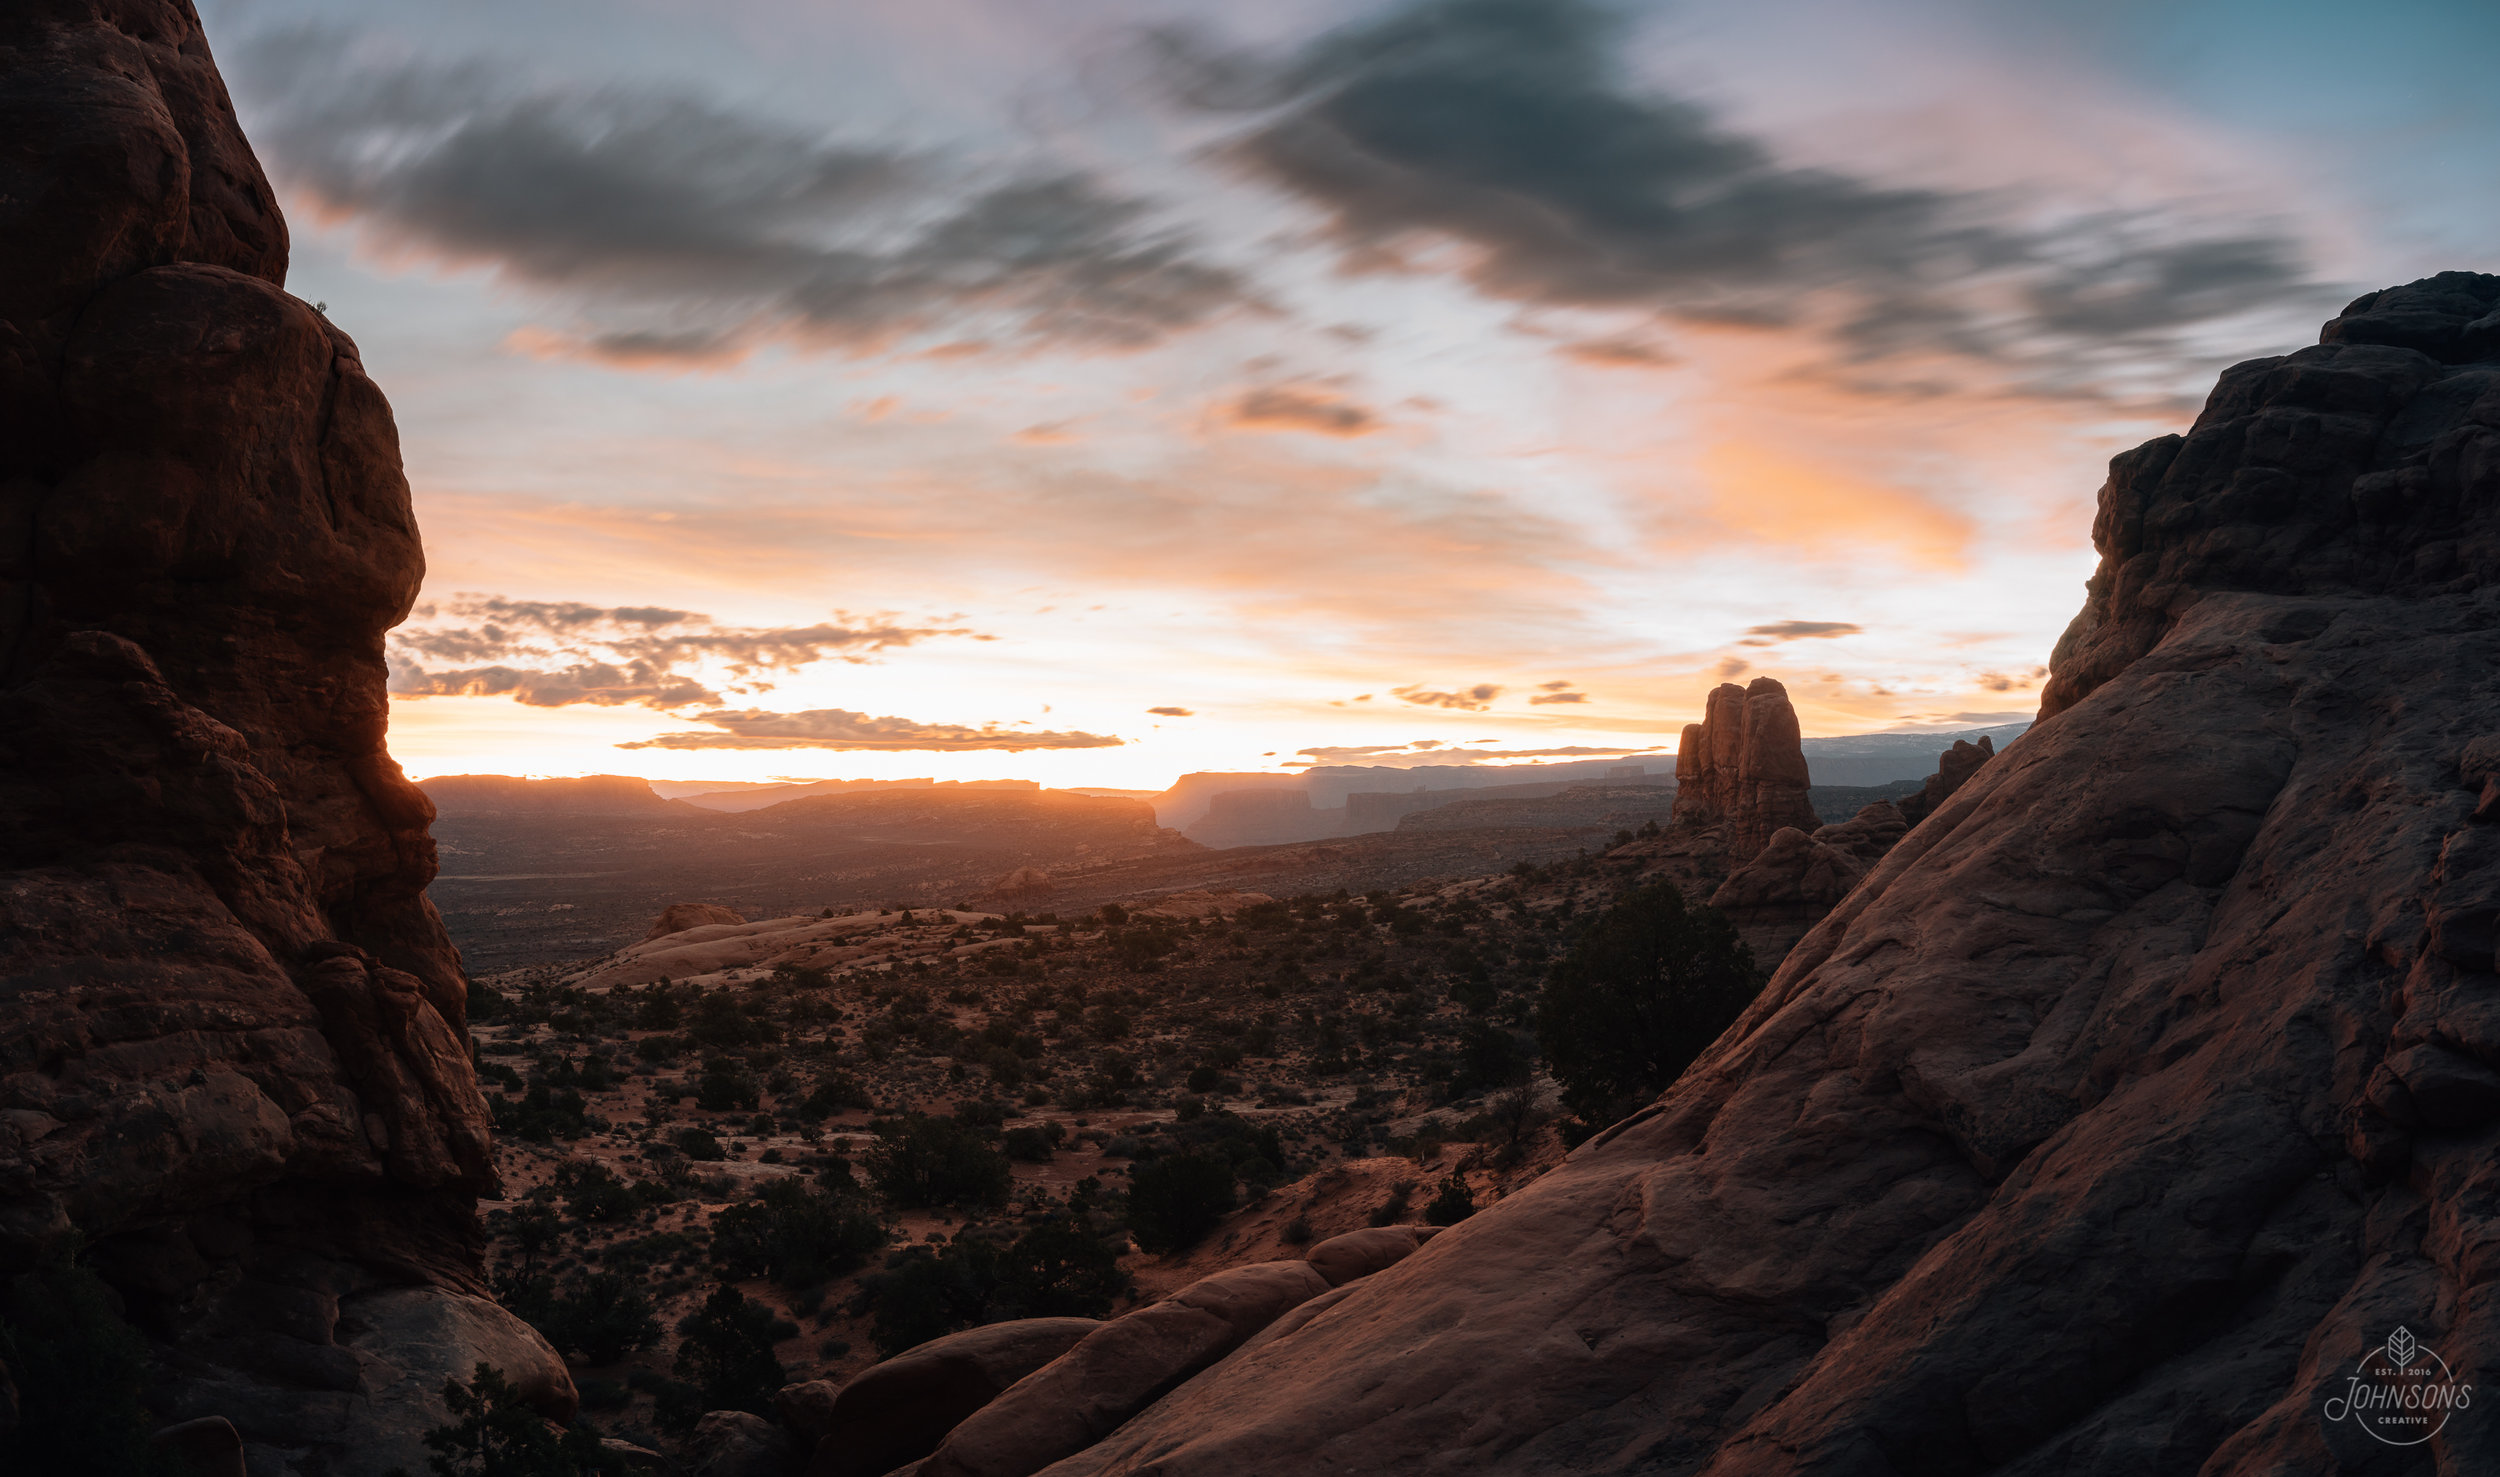 Sony a7rii |35mm 2.8 |f7.1 | 30 sec |ISO 400 | 5 image stitched panoramic    This is looking the opposite direction than the last photo of turret arch. The rock face at the very left is where you climb up to to get the next image's viewpoint (but you'll most likely have to get lucky or Photoshop out some tourists + photographers who are standing where I am)